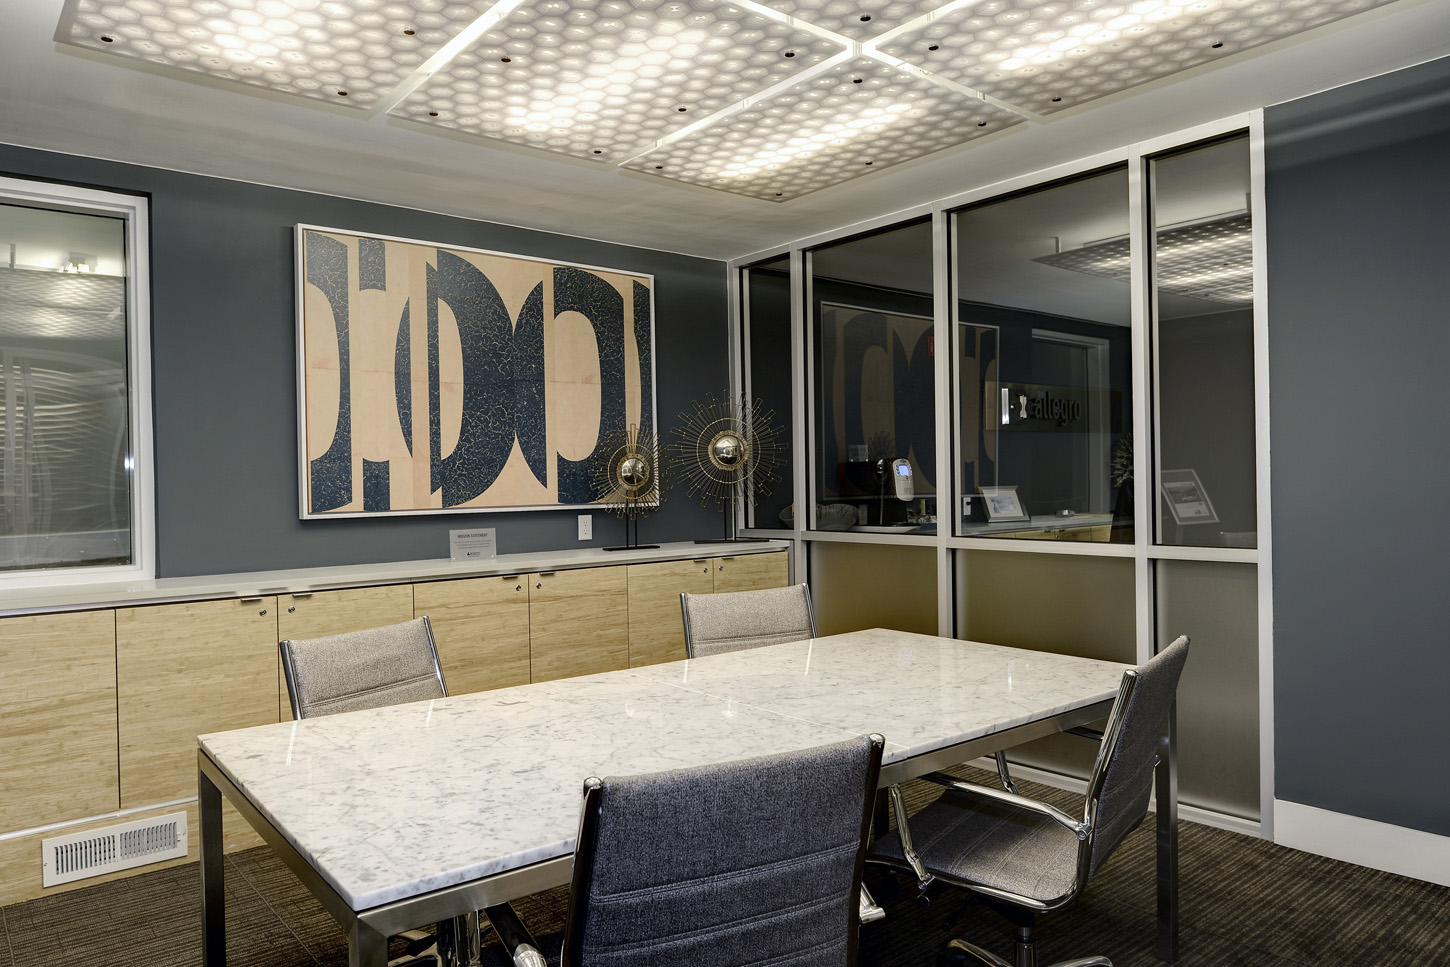 Brightly lit conferencing room with large table and shelving for catering or storage